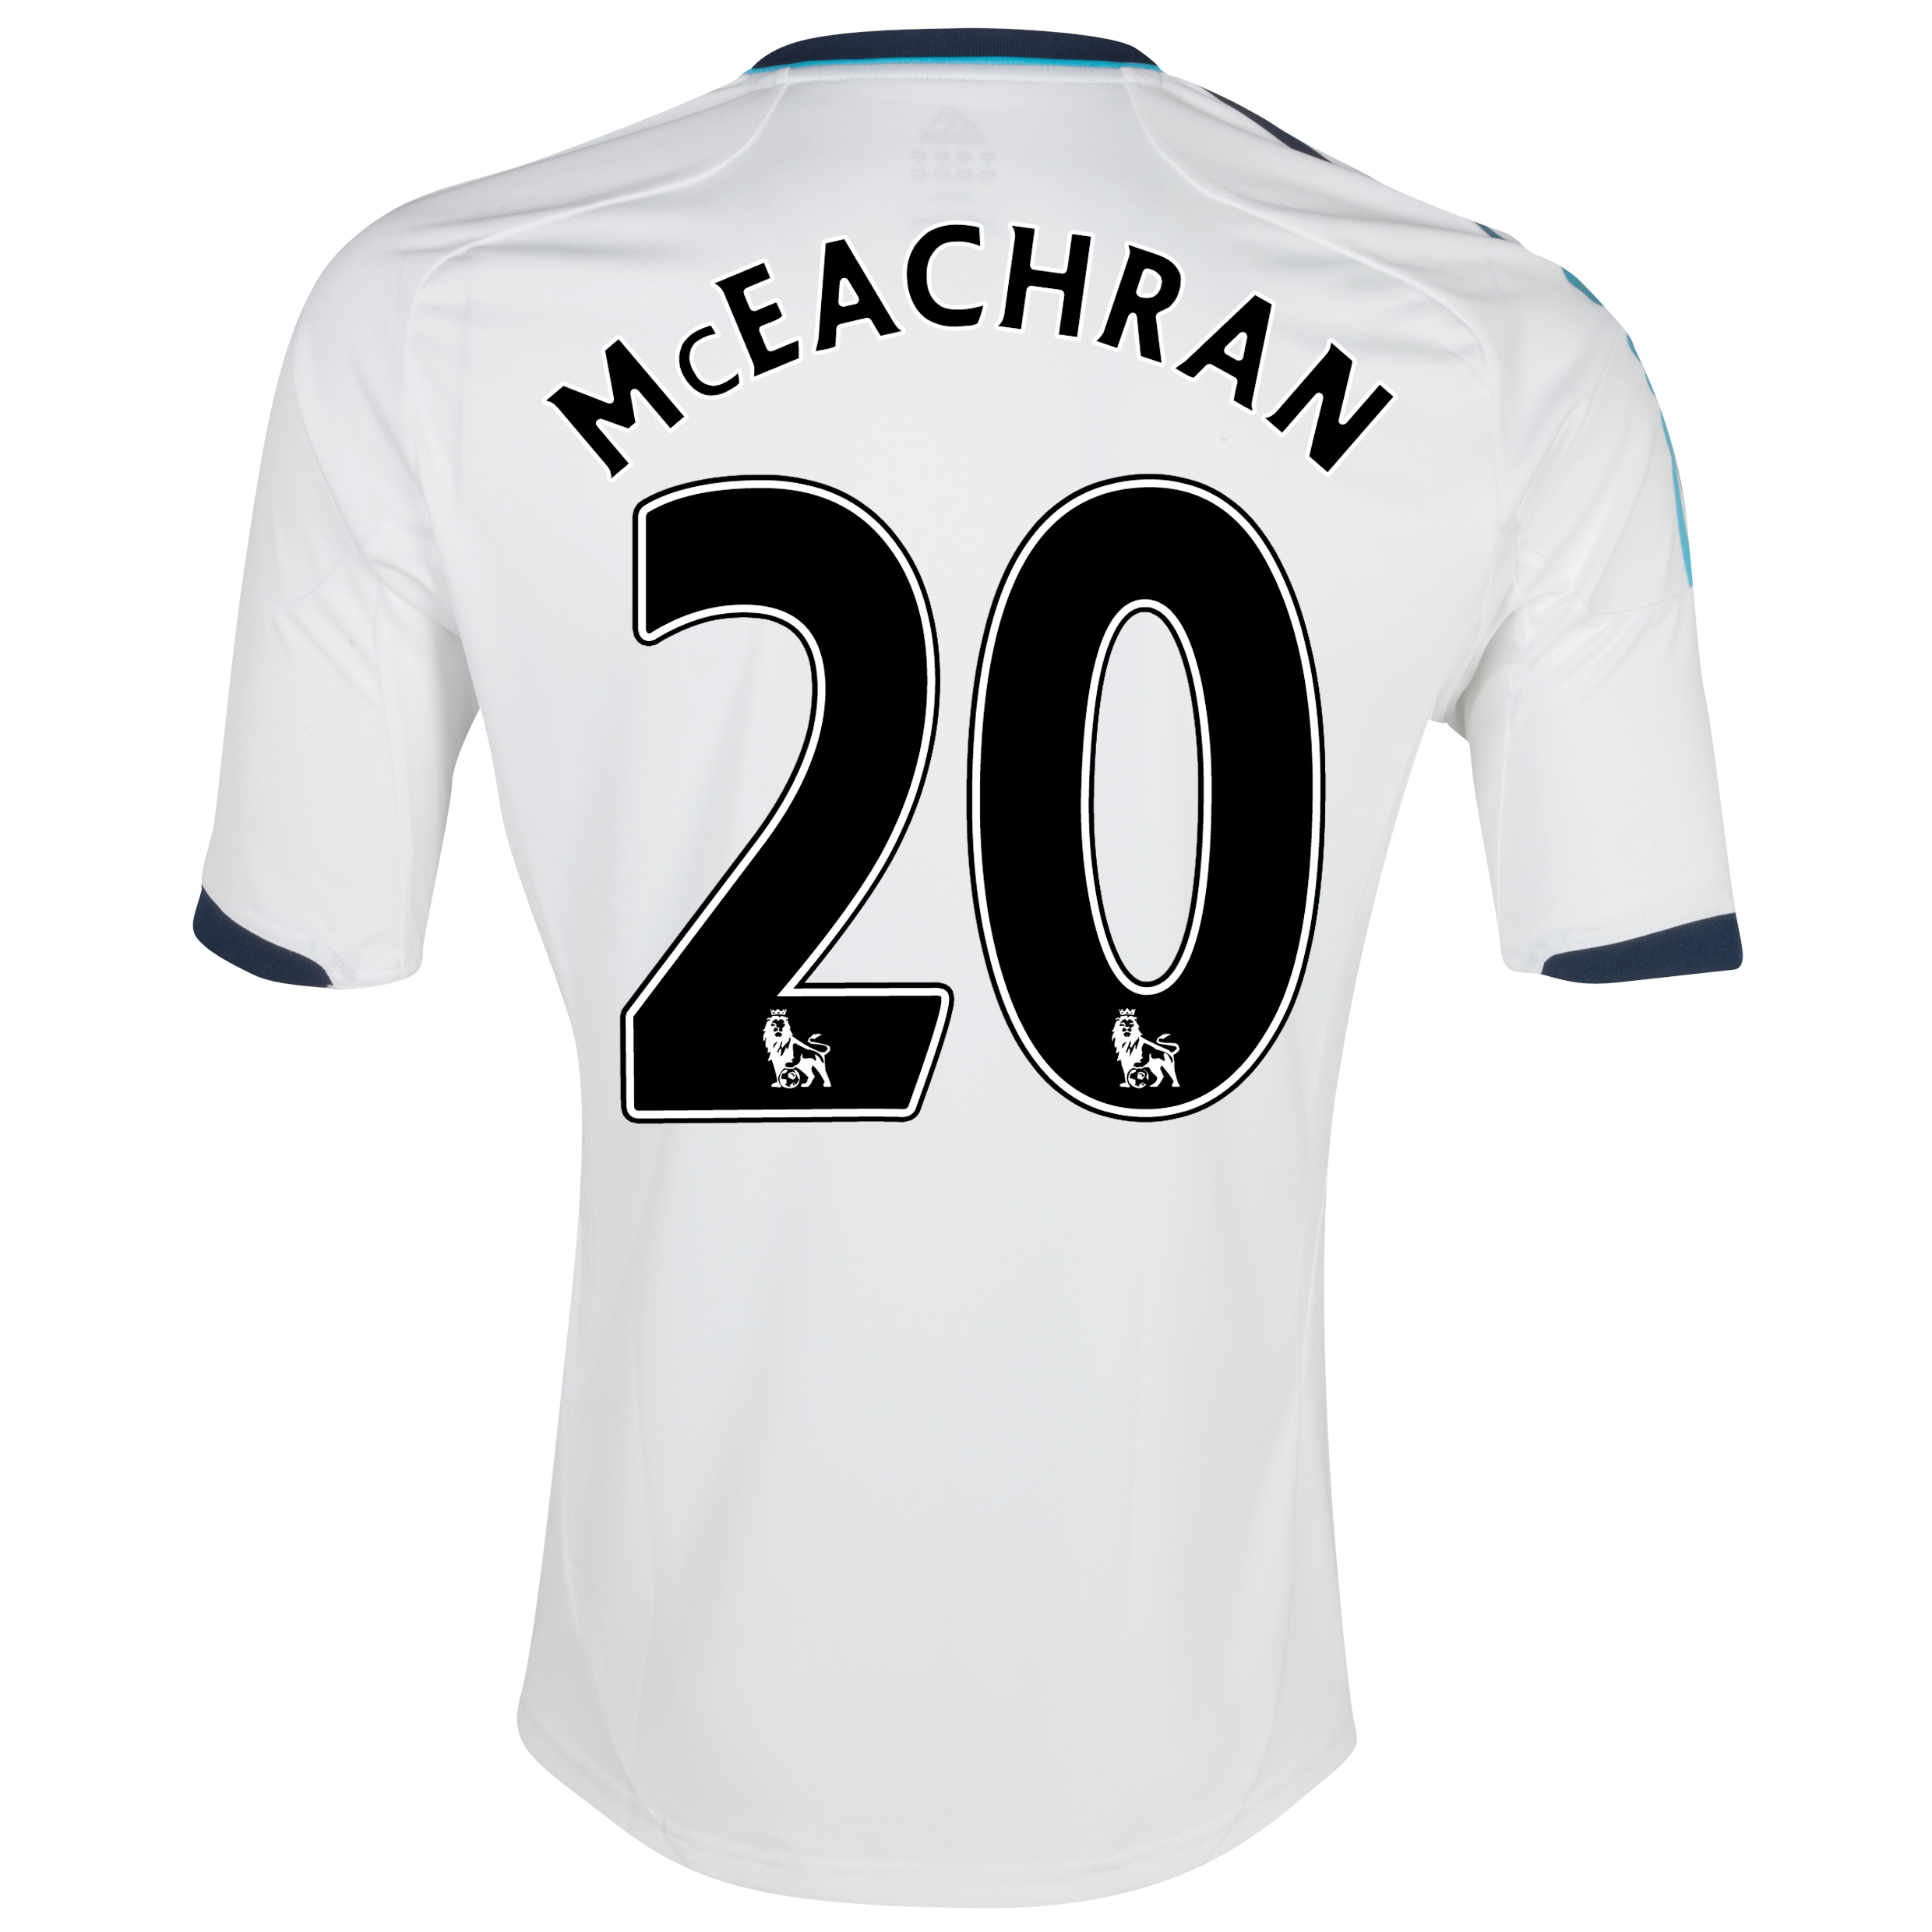 Chelsea Away Shirt 2012/13 - Youths with McEachran 20 printing